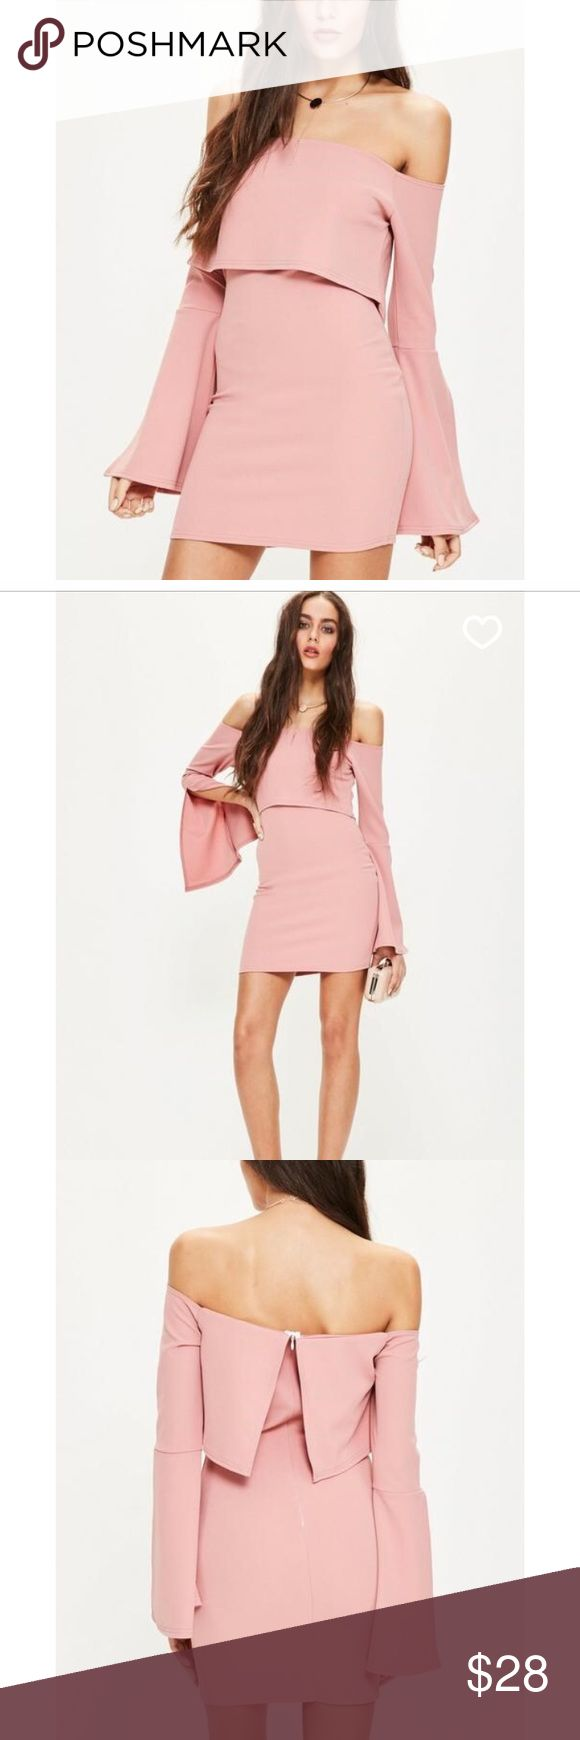 """Bardot Split sleeve Bodycon Dress NWT Never worn. New with tags. Bardot styles are not just a trend anymore they're a way of life - refresh your wardrobe with this pink bodycon dress, featuring a bardot style top, split sleeves and mini length. Stretch fit Mixed Fibres Approx length: 85cm/33.5"""" (Based on a UK size 8 sample) Jazmine wears a UK size 8 / EU size 36 / US size 4 and her height is 5'9"""" Missguided Dresses"""